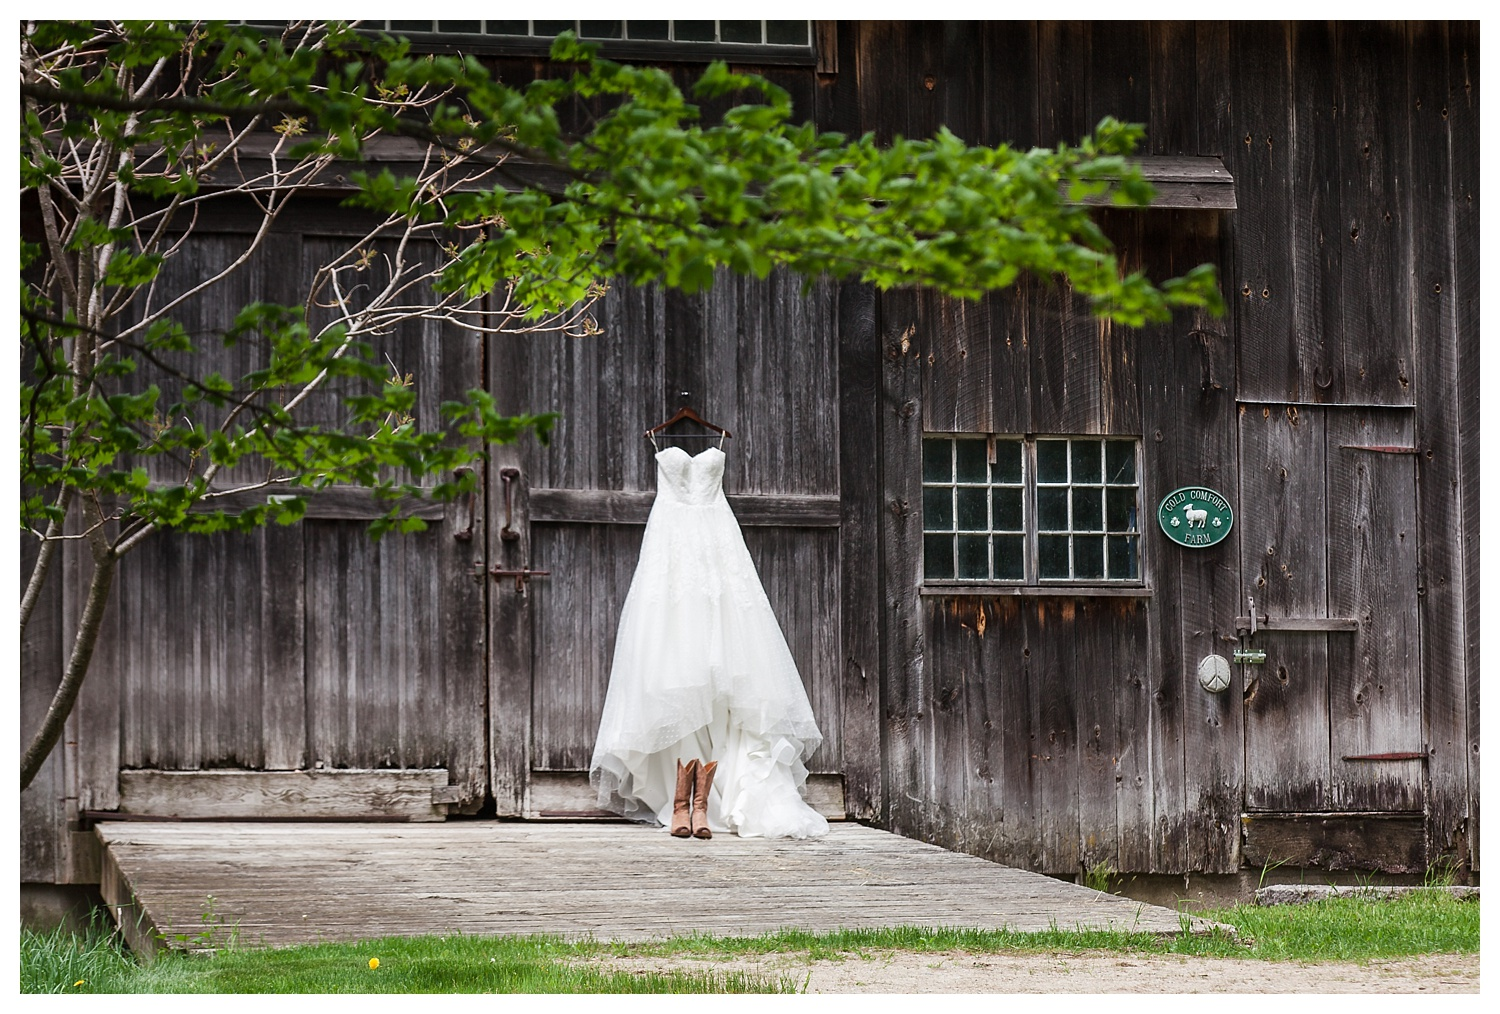 #Carbo Wedding,Artistic,BLM,Black and White Wedding Photography,Brattleboro,Candid,Carbo Wedding,Cold Comfort Farm,Creative,Dublin,Emily & Kent,Emily-Kent_Cold-Comfort-Farm,Hancock,Harrisville,Jaffrey,Keene,MA,ME,Maine,Marlborough,Massachusettes,May,NH,NH Wedding,Natural,Natural Light,Nelson,New England,New England Wedding,Peterborough,Peterborough Wedding Photographer,Photo,Photographer,Photography,Photojournalistic,Professional,Professional Wedding Photography,Rindge,Sharon,Style,Temple,Travel,USA,Unites States,VT,Vermont,Vivid,Wedding,Wedding Photography,Wedding Photography Packages,Wedding Photography Tips,www.blmphoto.com,©BLM Photography 2016,